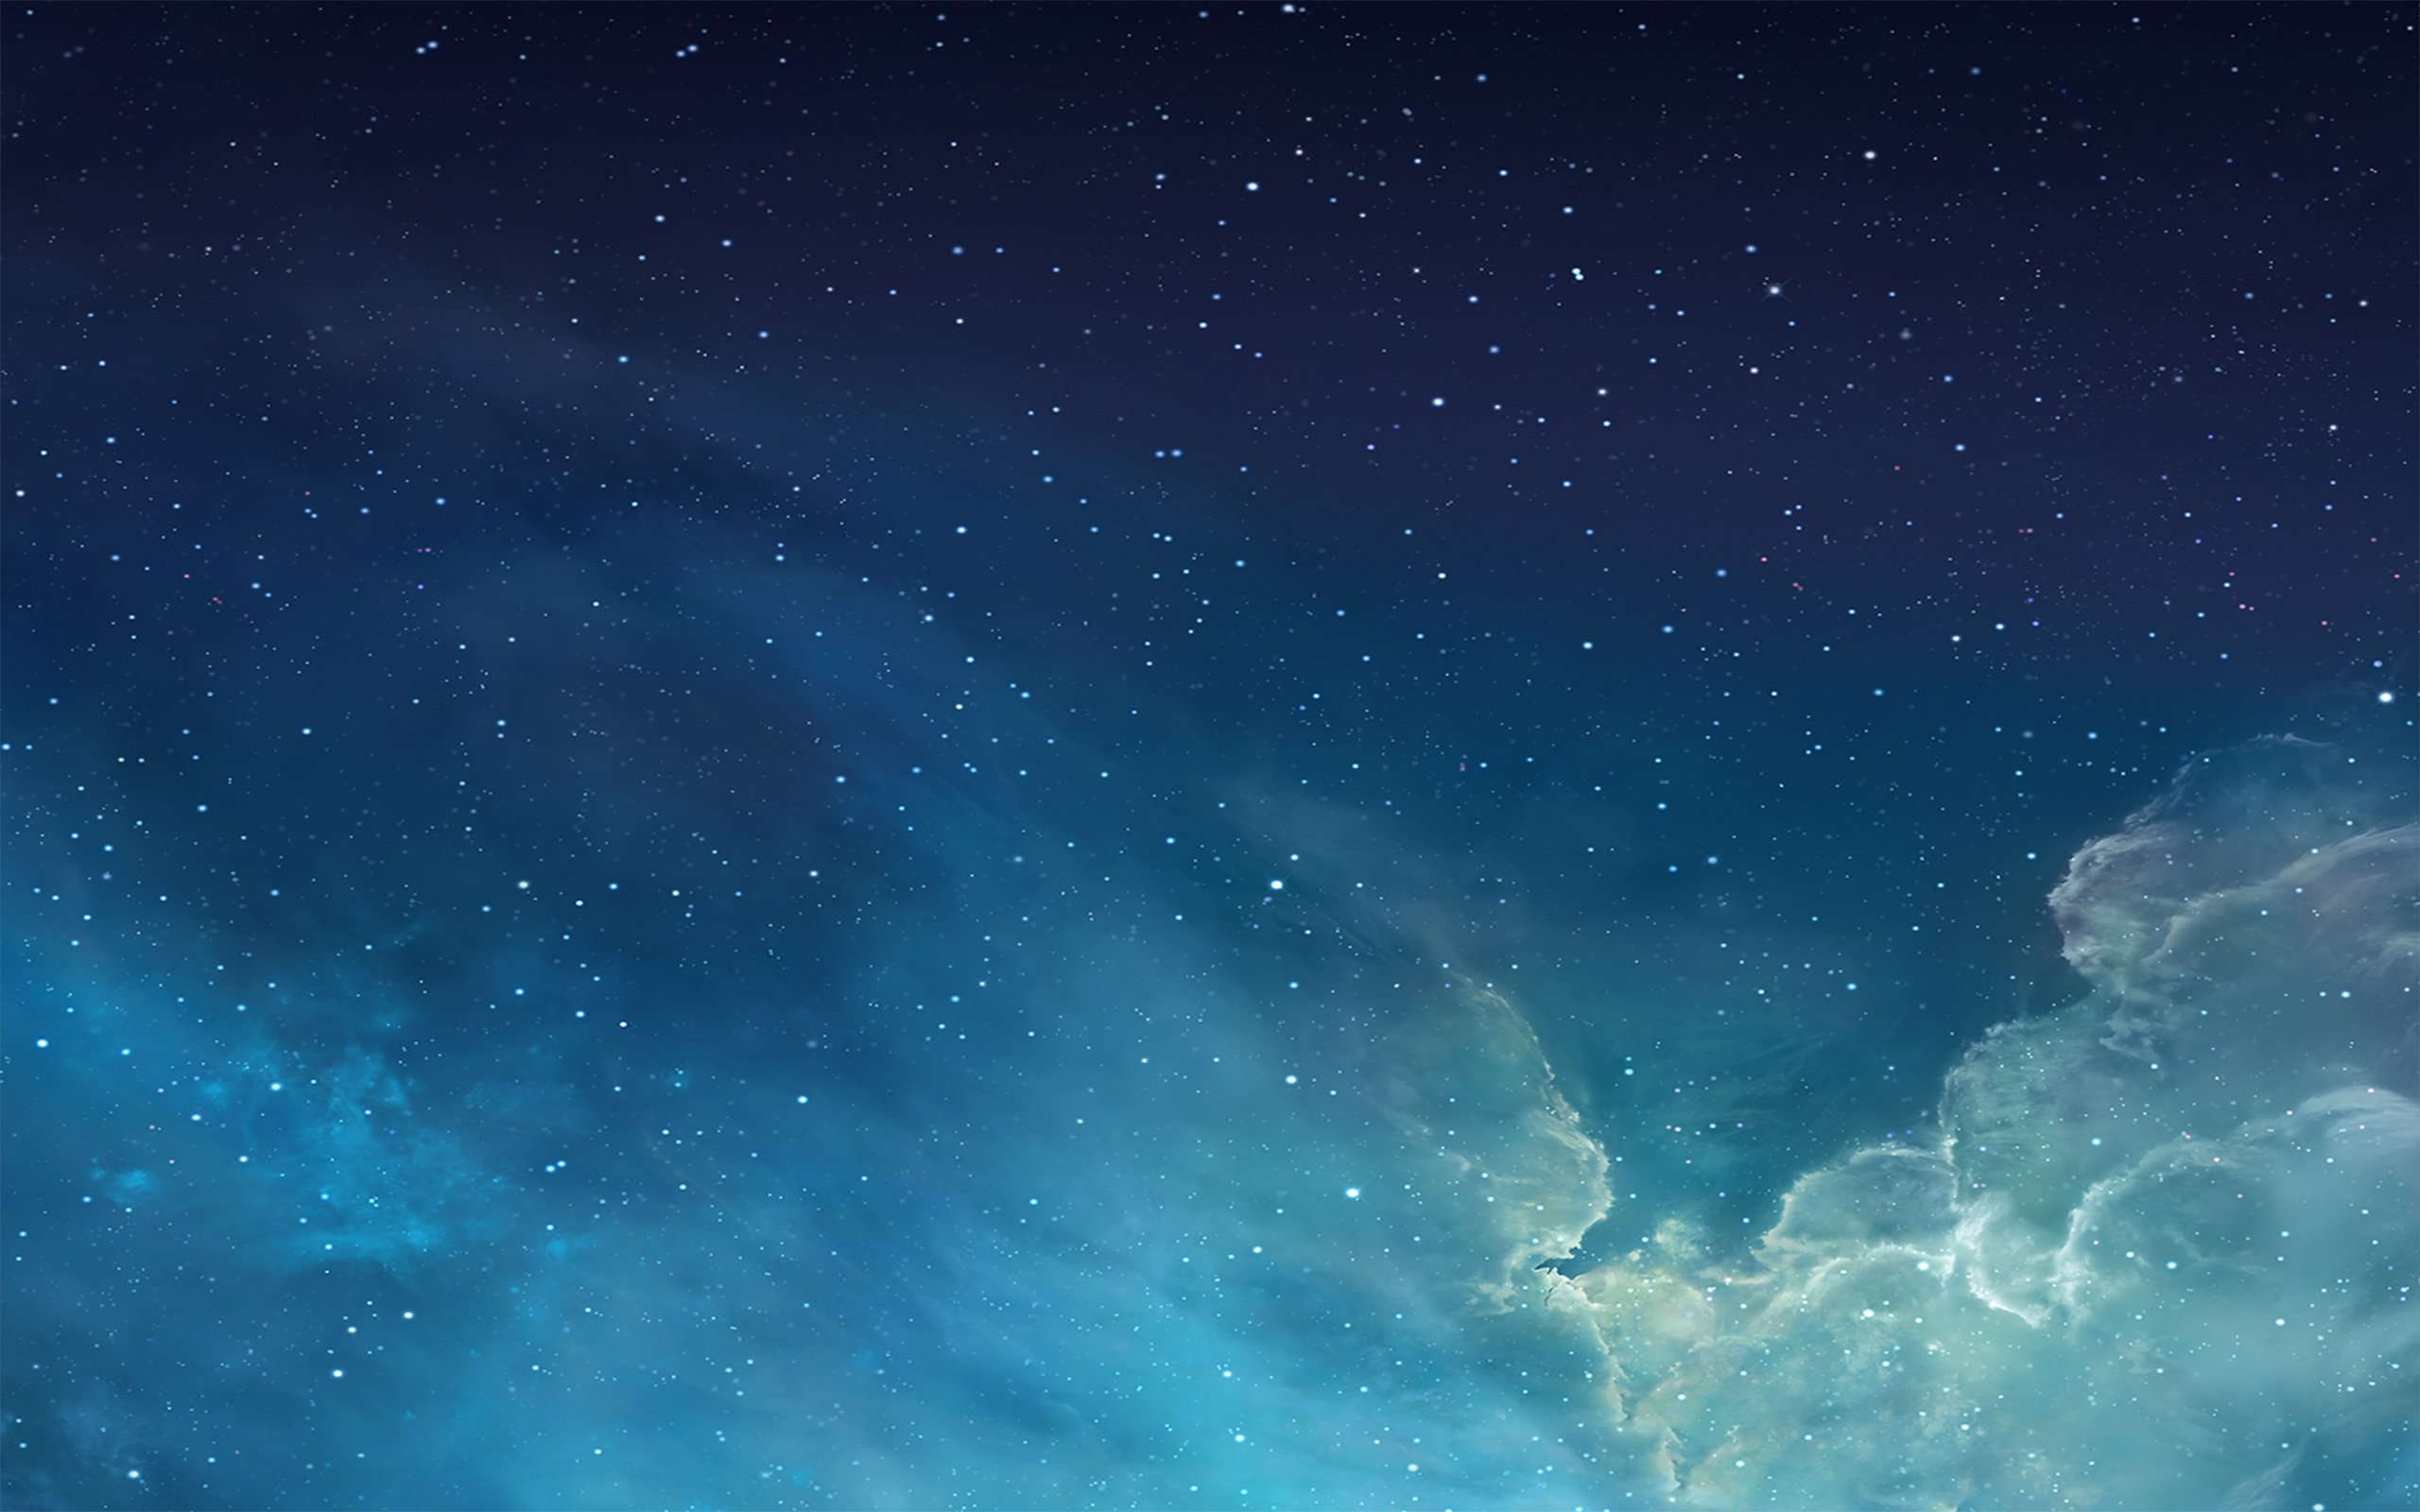 iOS 7 Galaxy Wallpapers HD Wallpapers 2560x1600